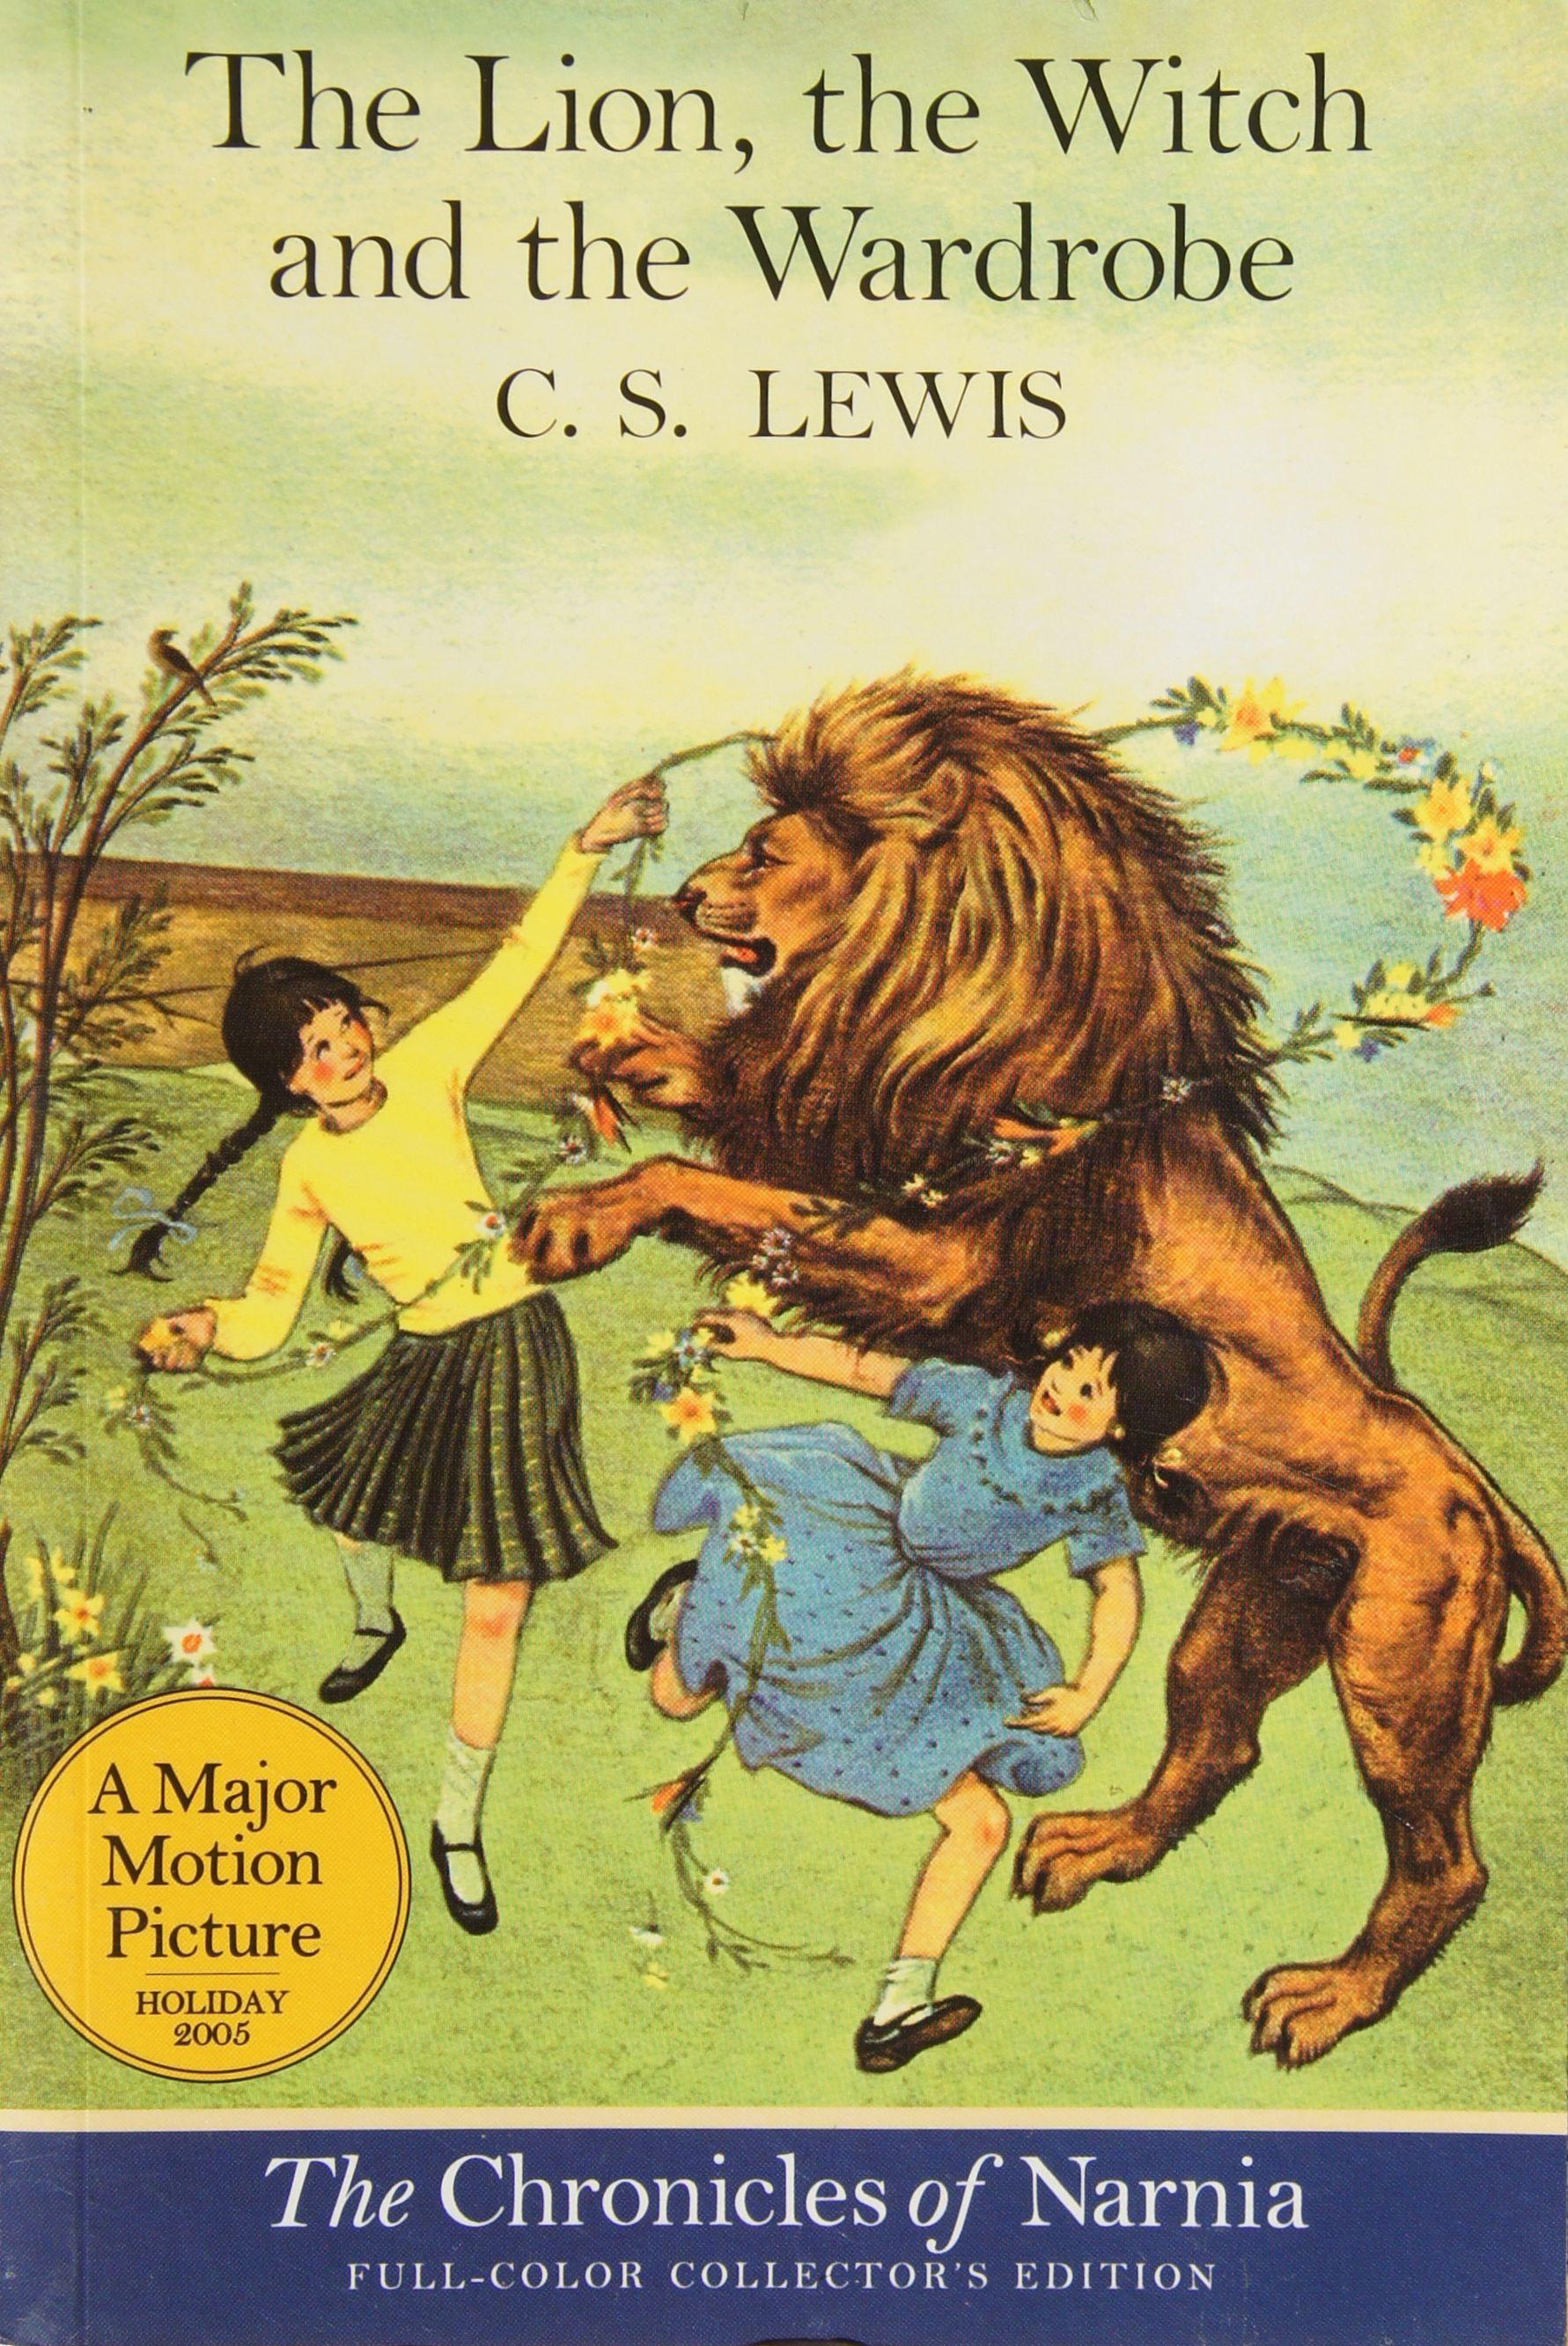 children s books you should definitely re as an adult whether you get into the allegory or not c s lewis masterpiece will transport you